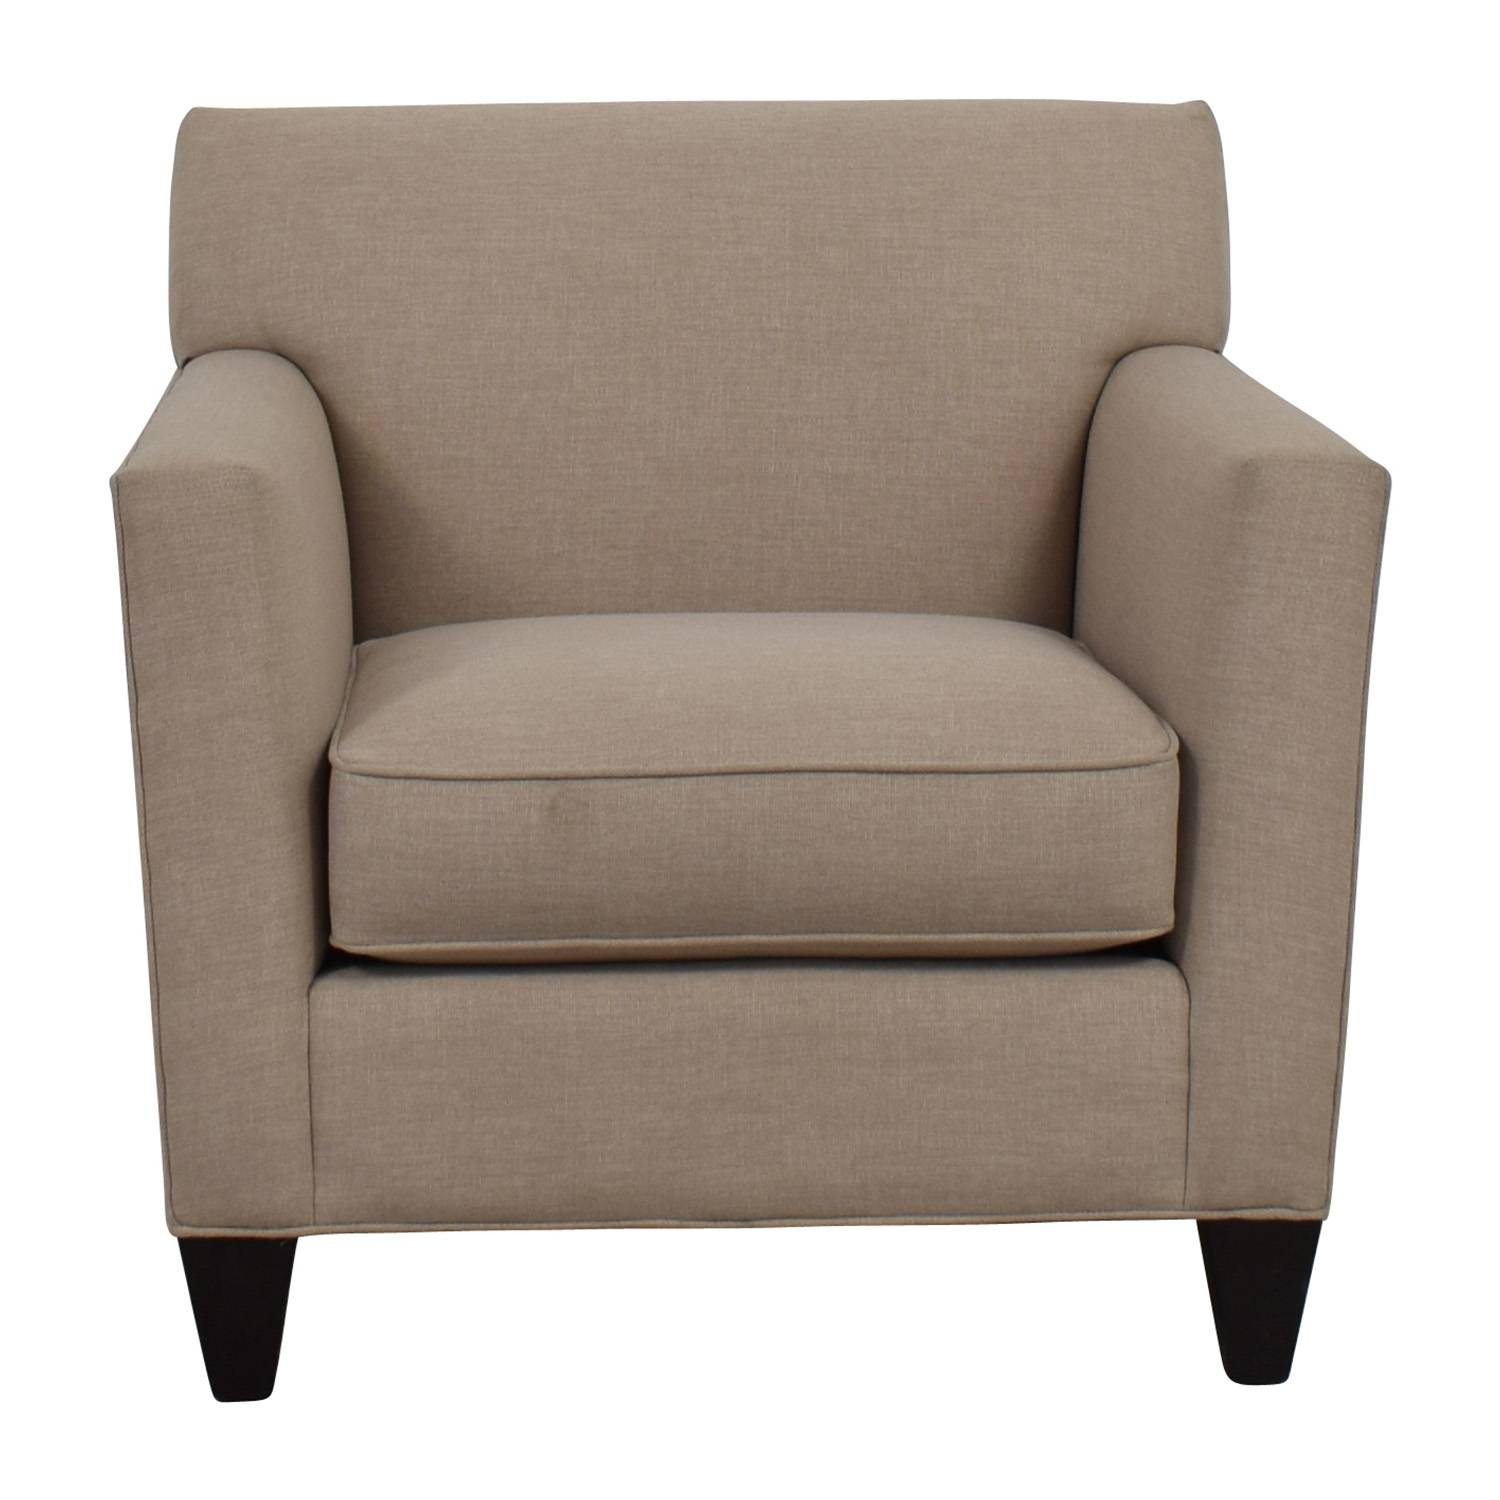 43% Off – Crate & Barrel Crate & Barrel Hennessy Sofa Chair / Chairs In Sofa Chairs (View 3 of 30)